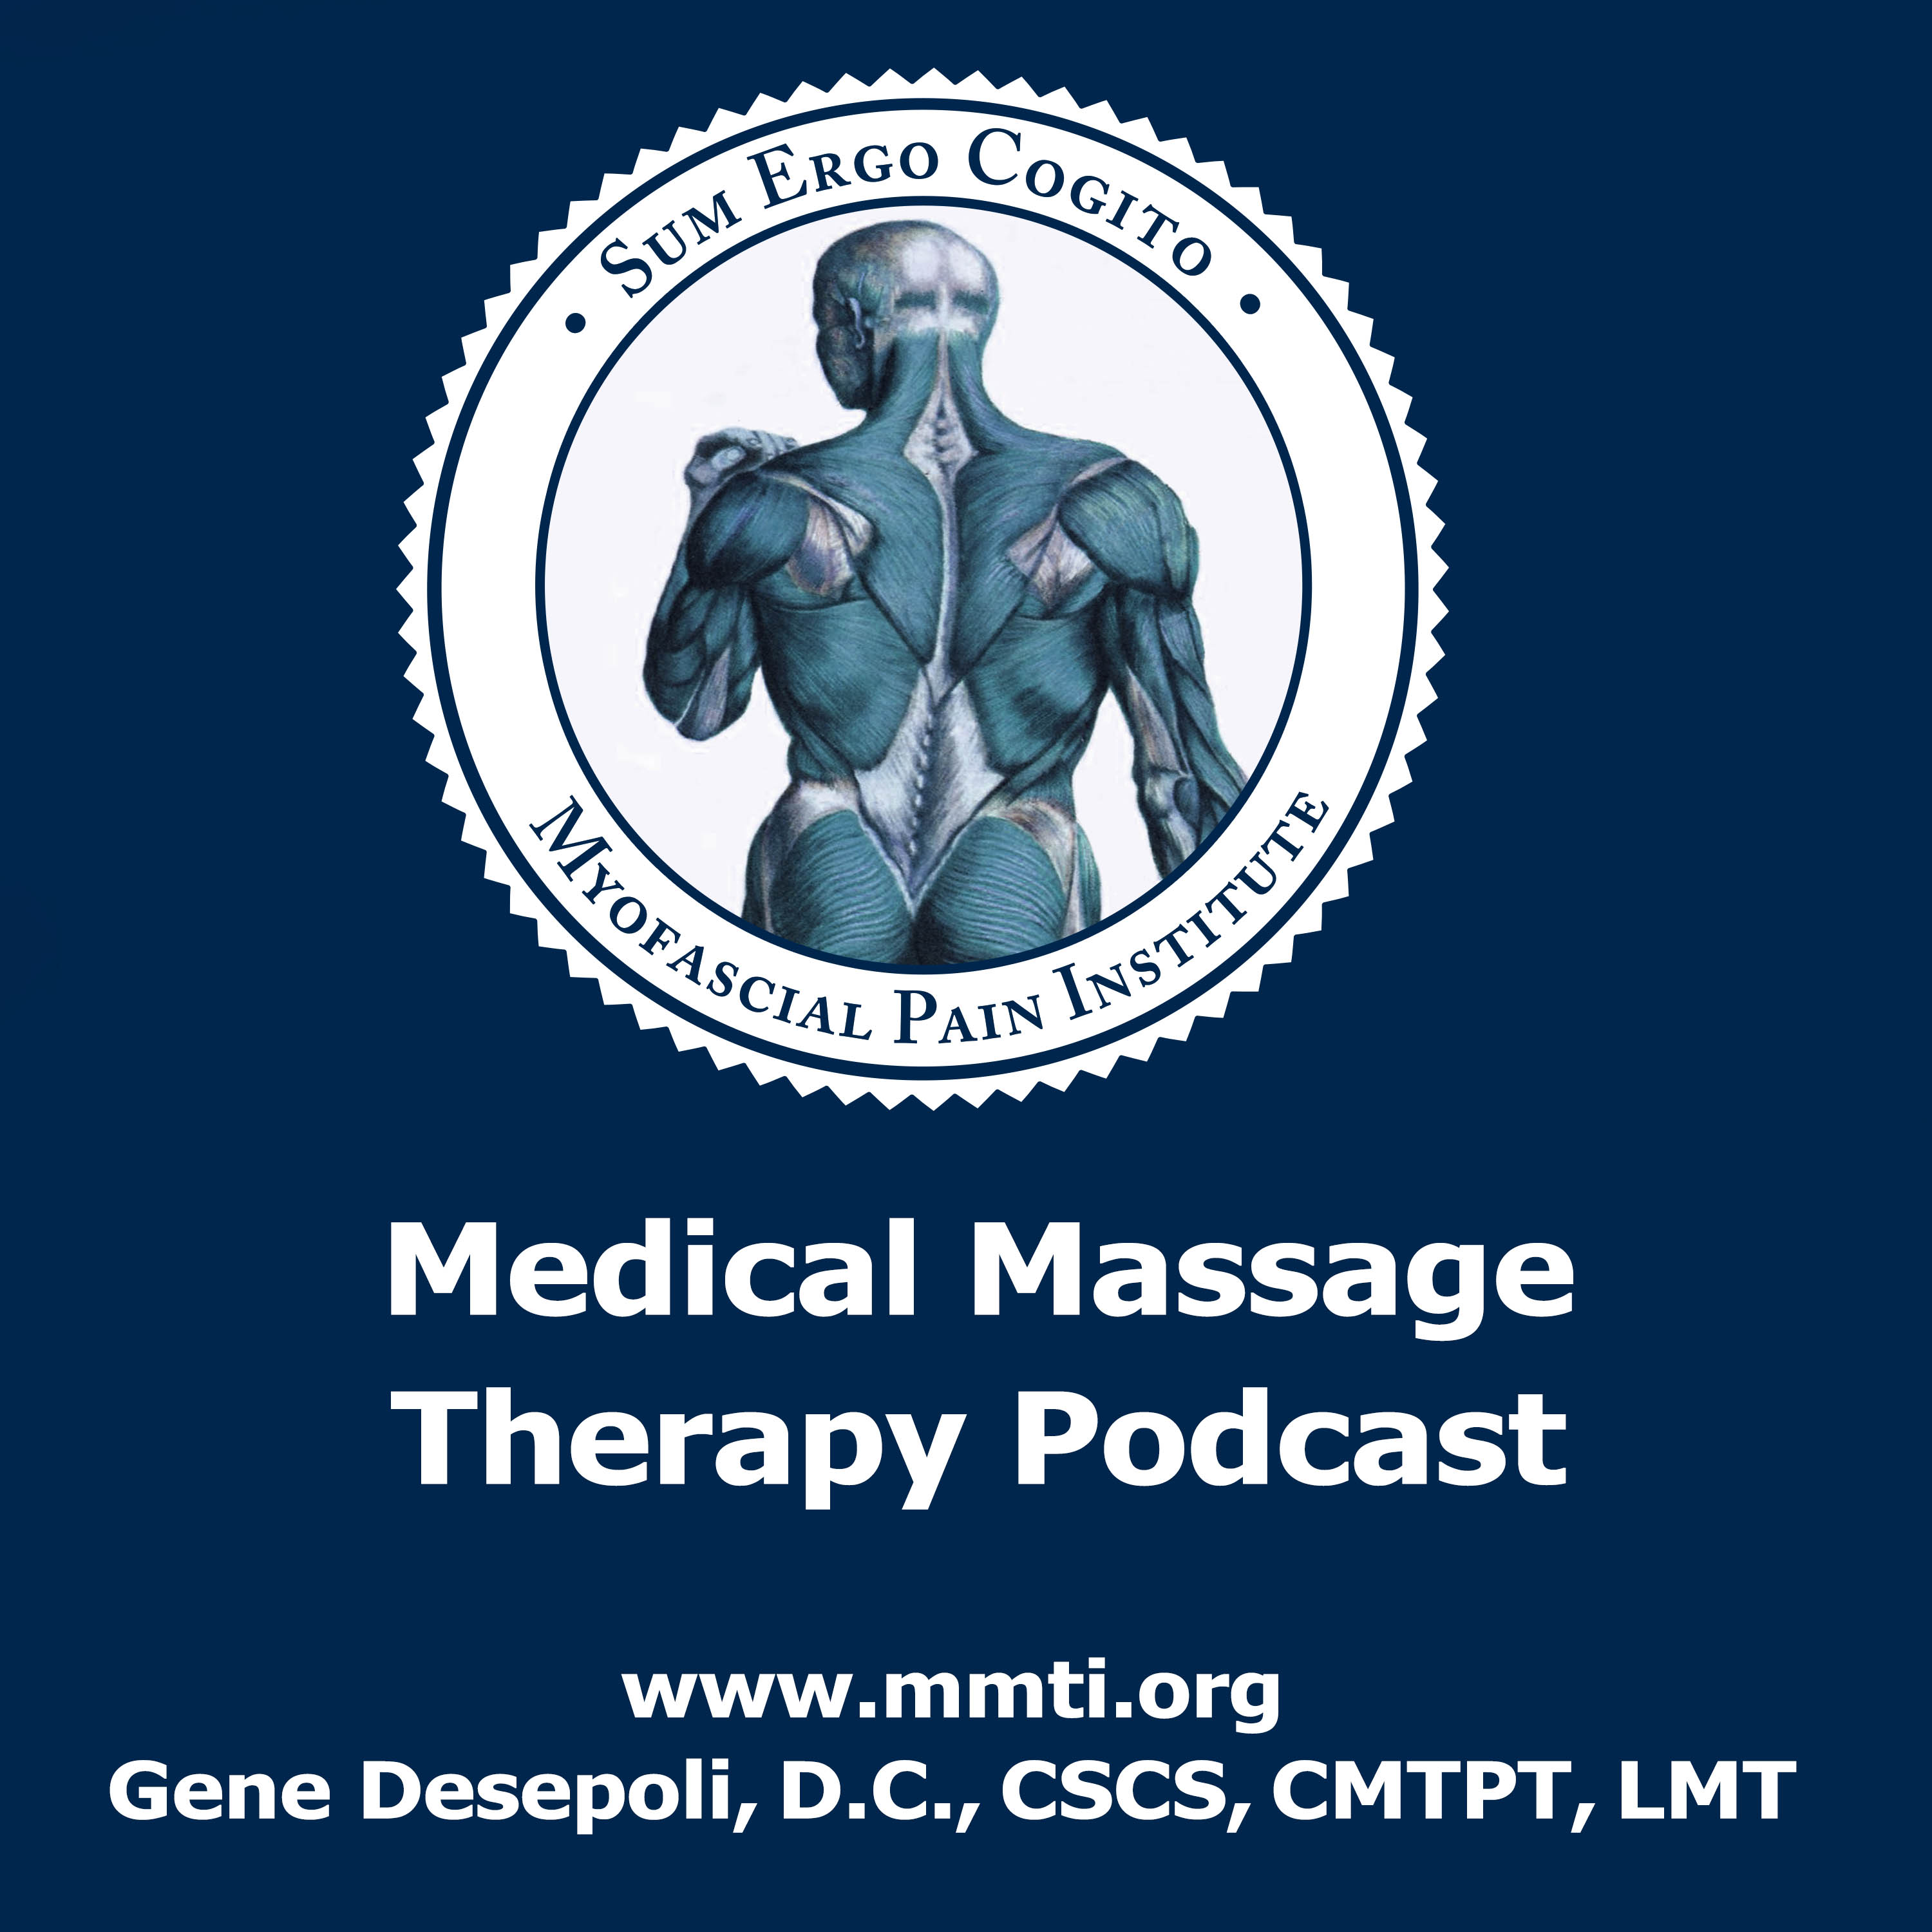 Medical Massage Therapy Podcast – The Myofascial Pain Institute